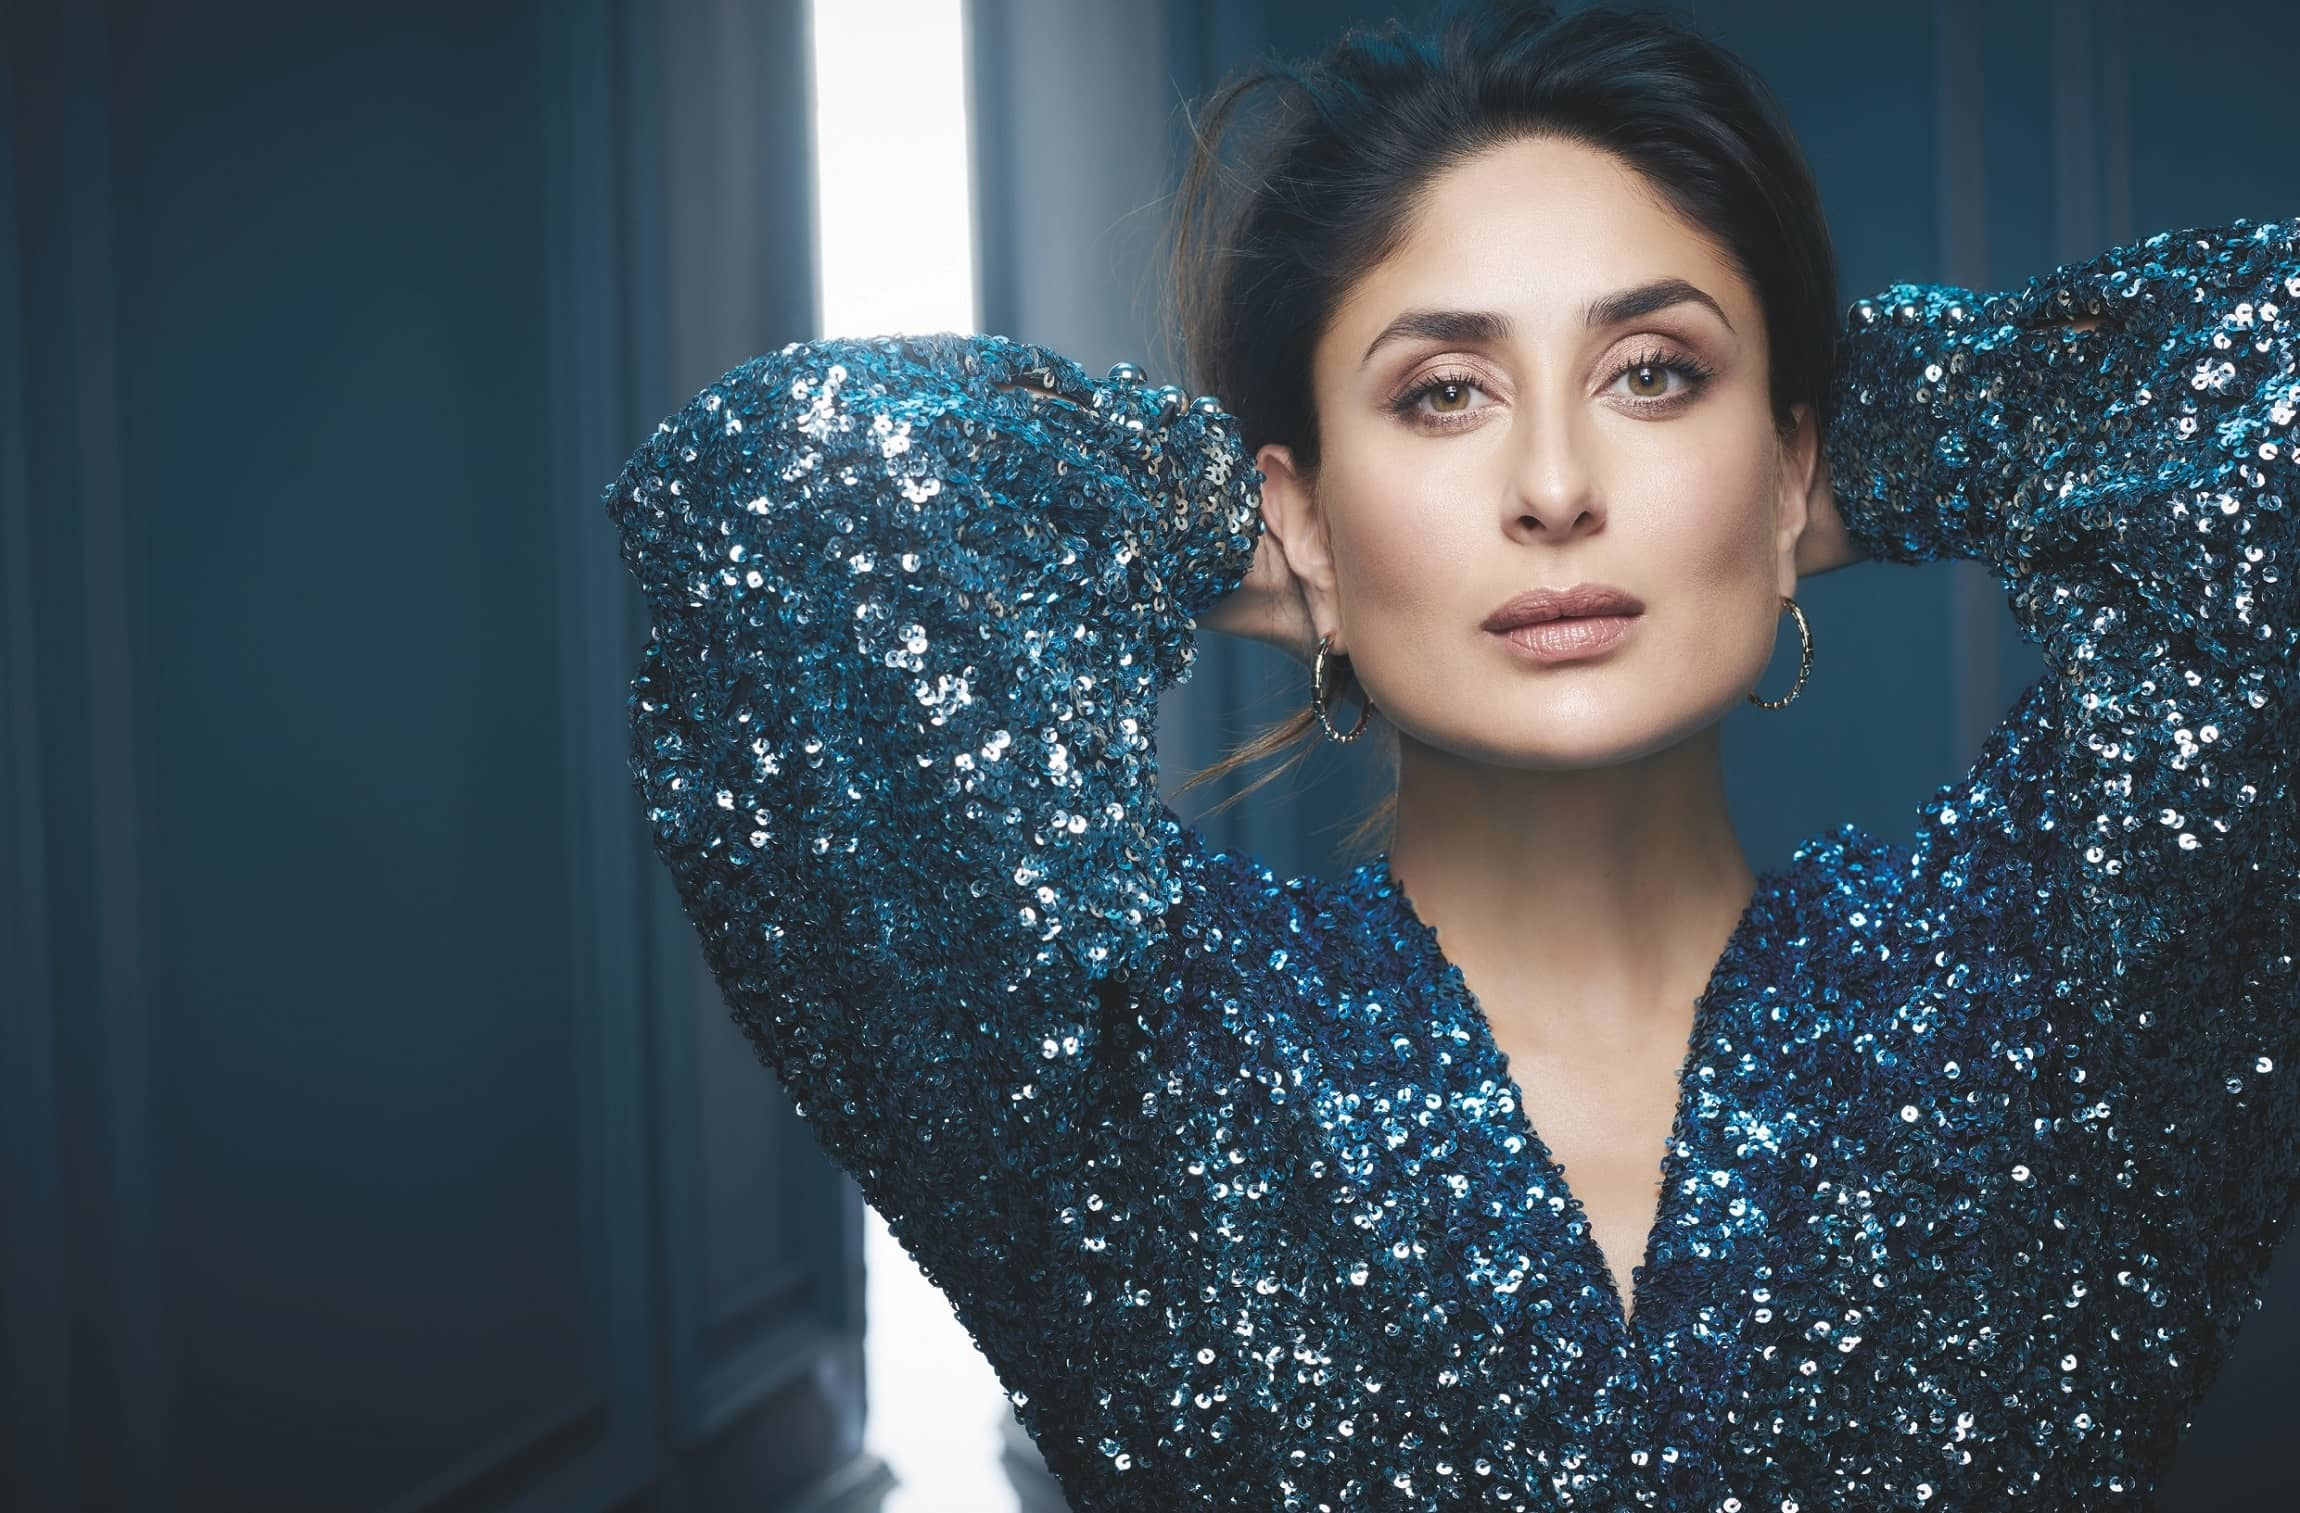 Kareena Kapoor Khan Is Now Ready For Her Close-Up